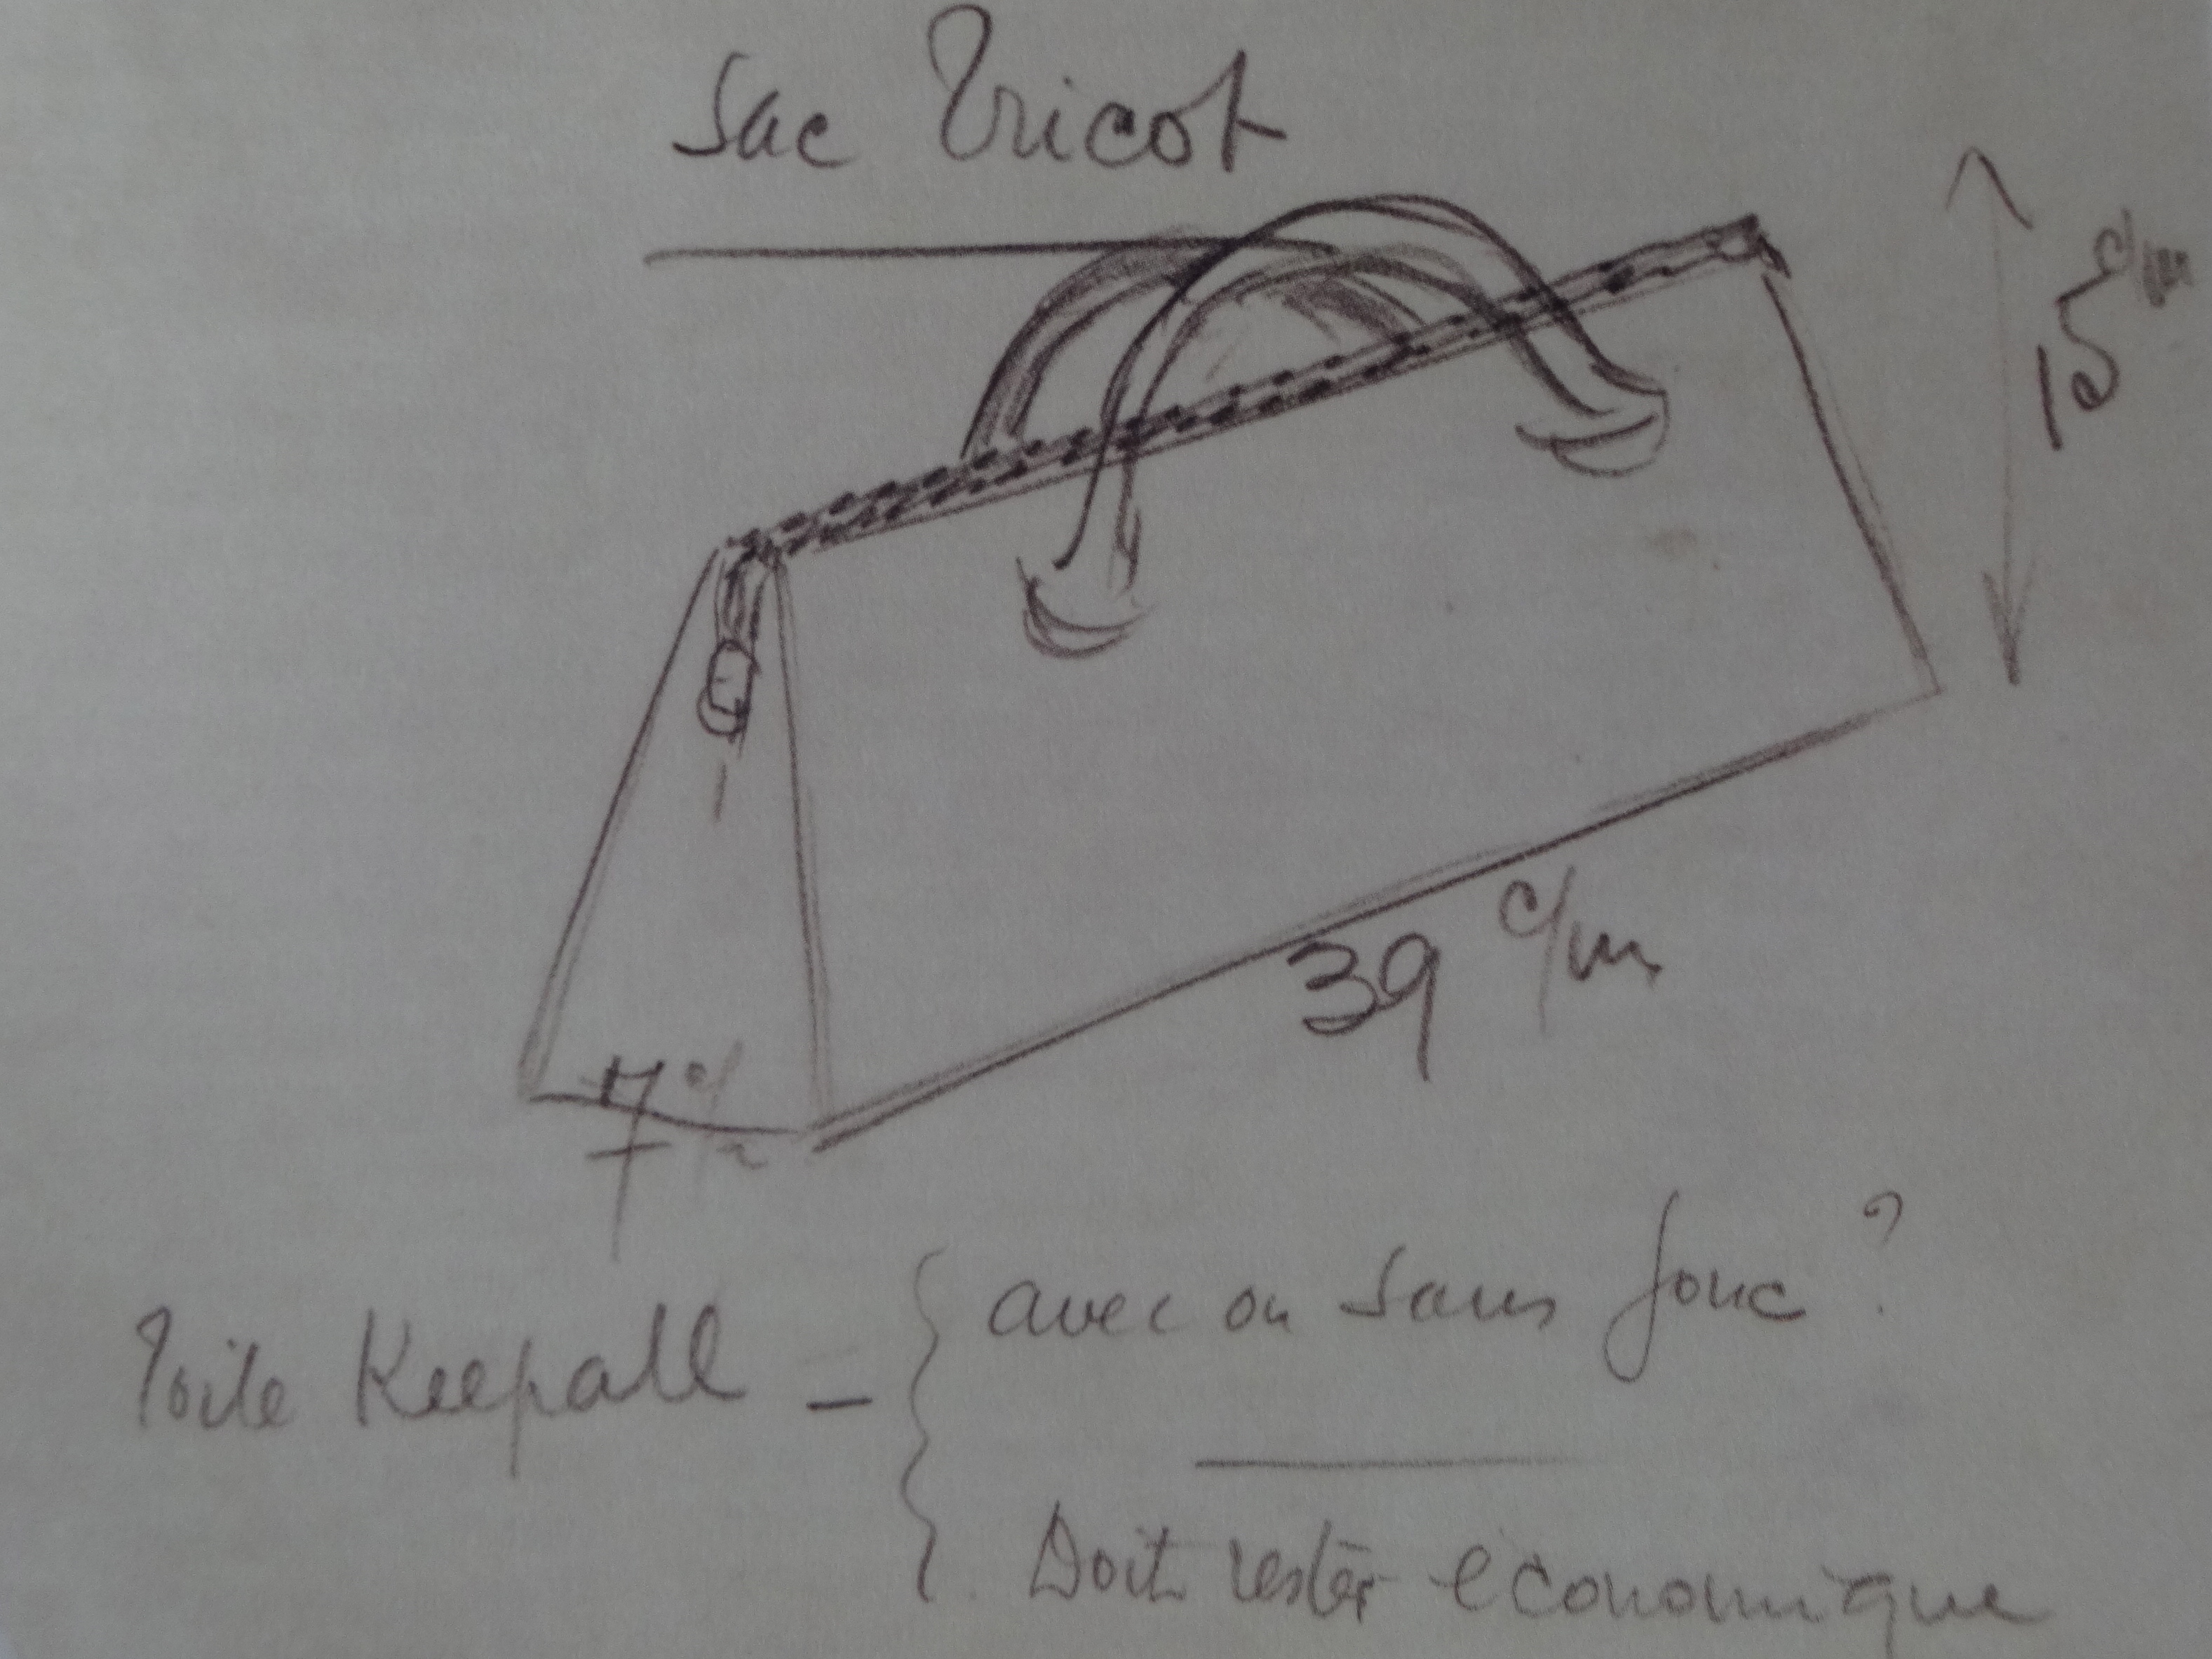 early triangle bag sketch (c) Louis Vuitton